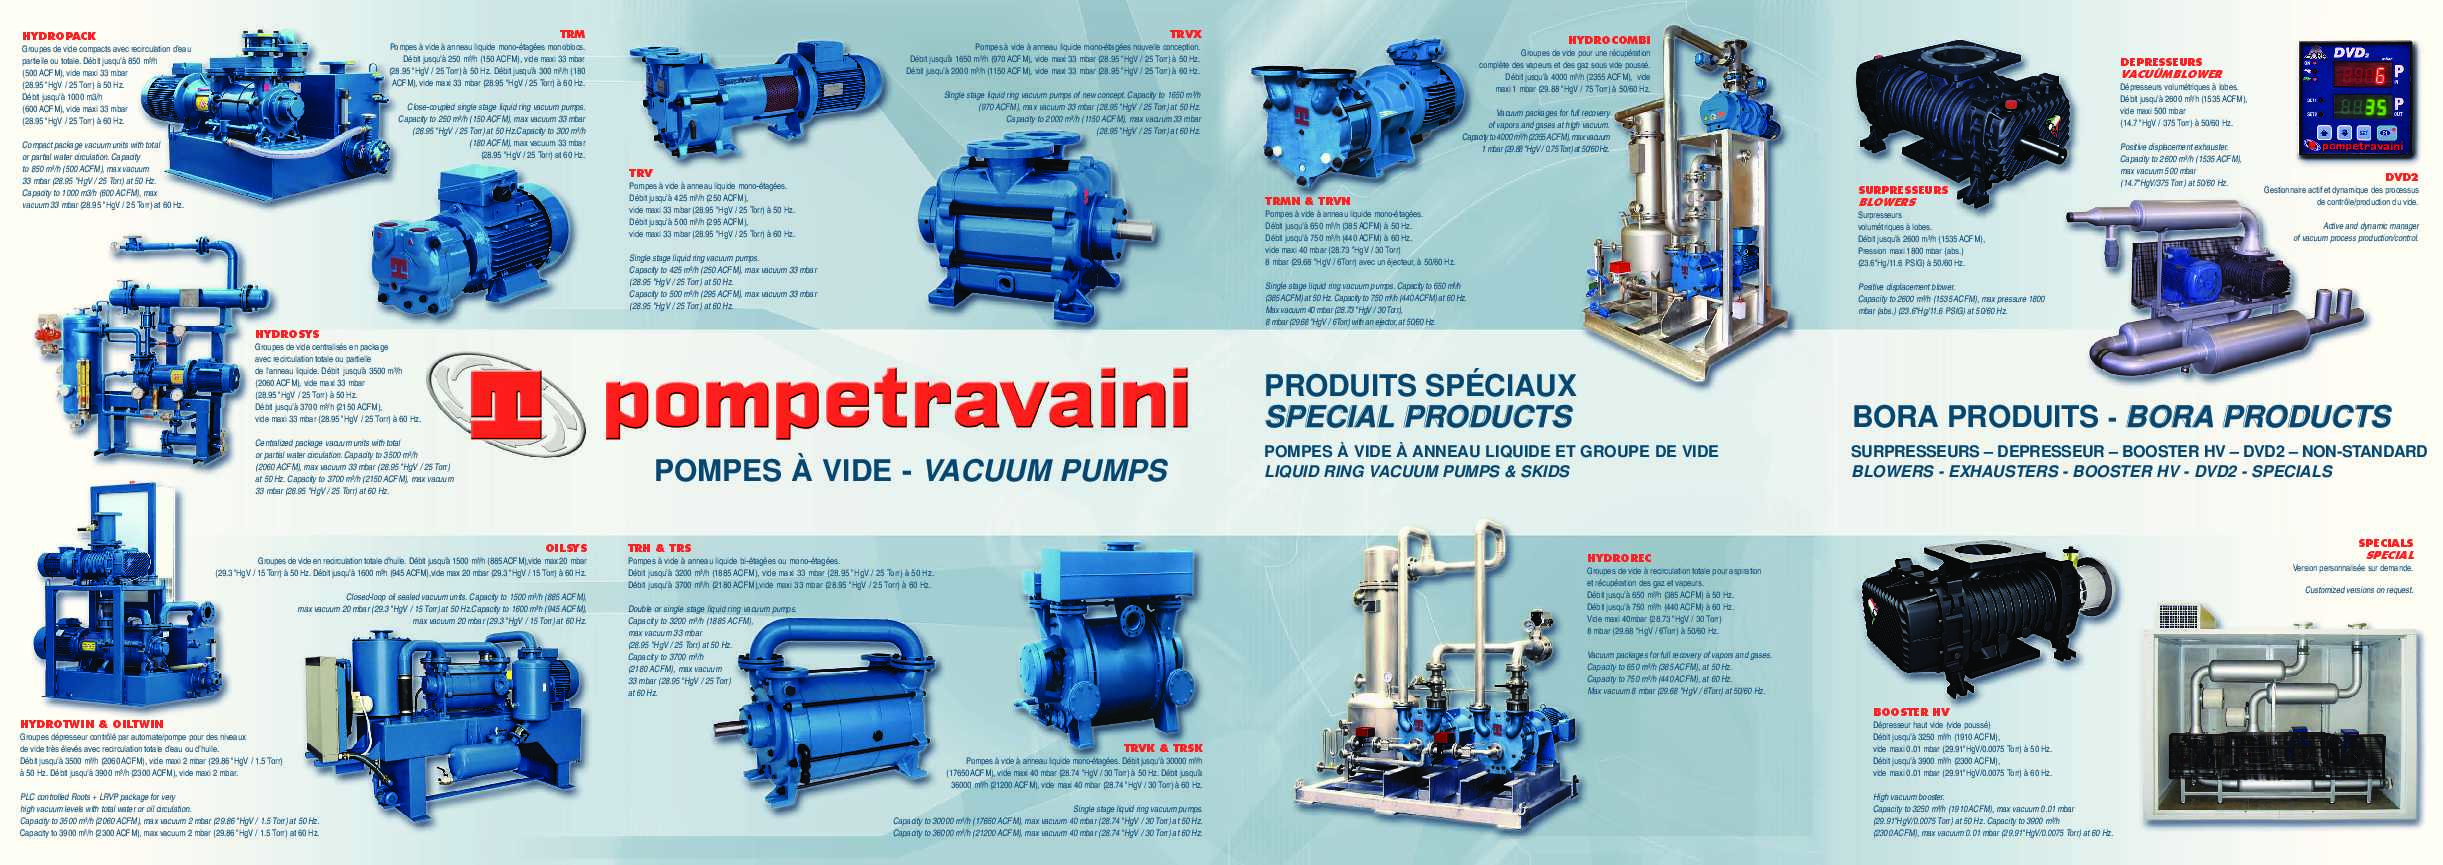 Pompetravaini Catalogue